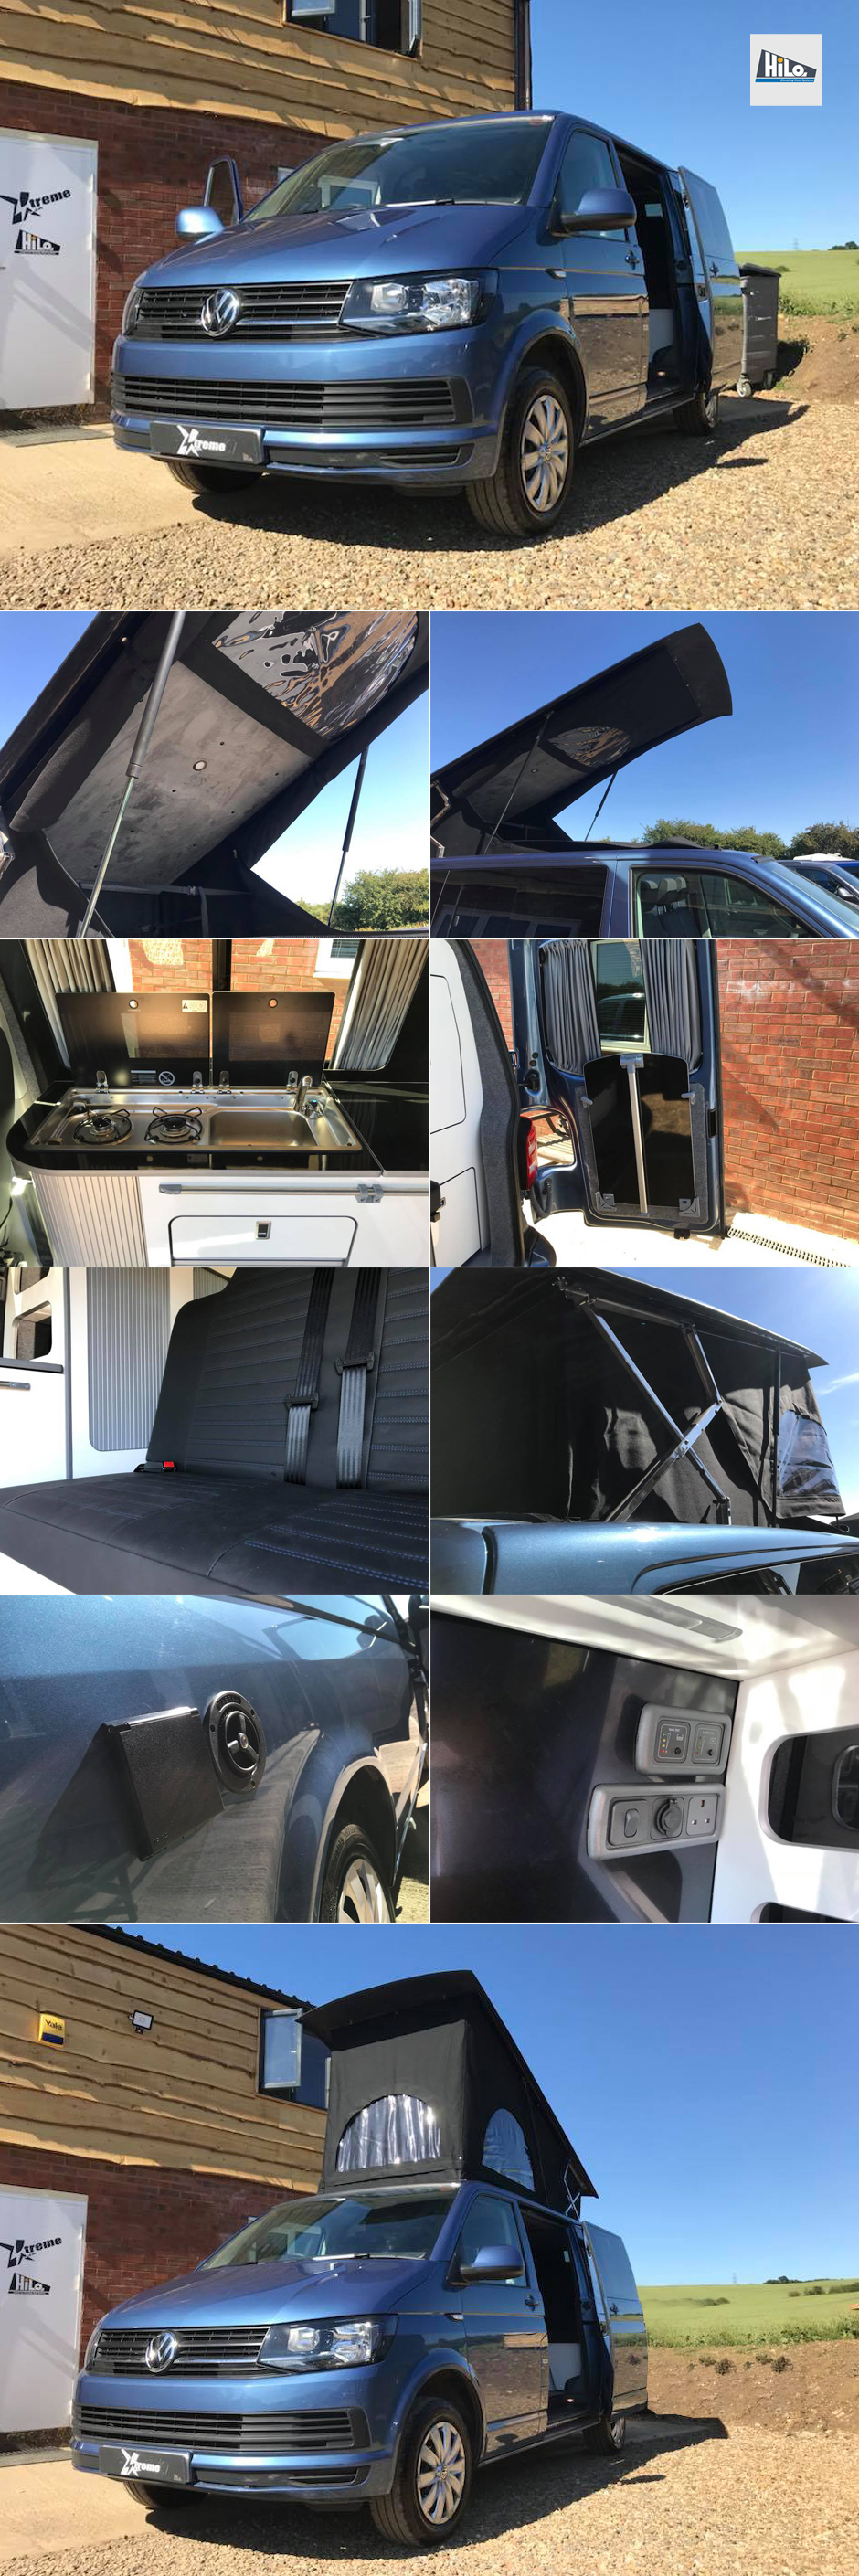 hiloroof fitters east midlands vw t5 t6 ford custom